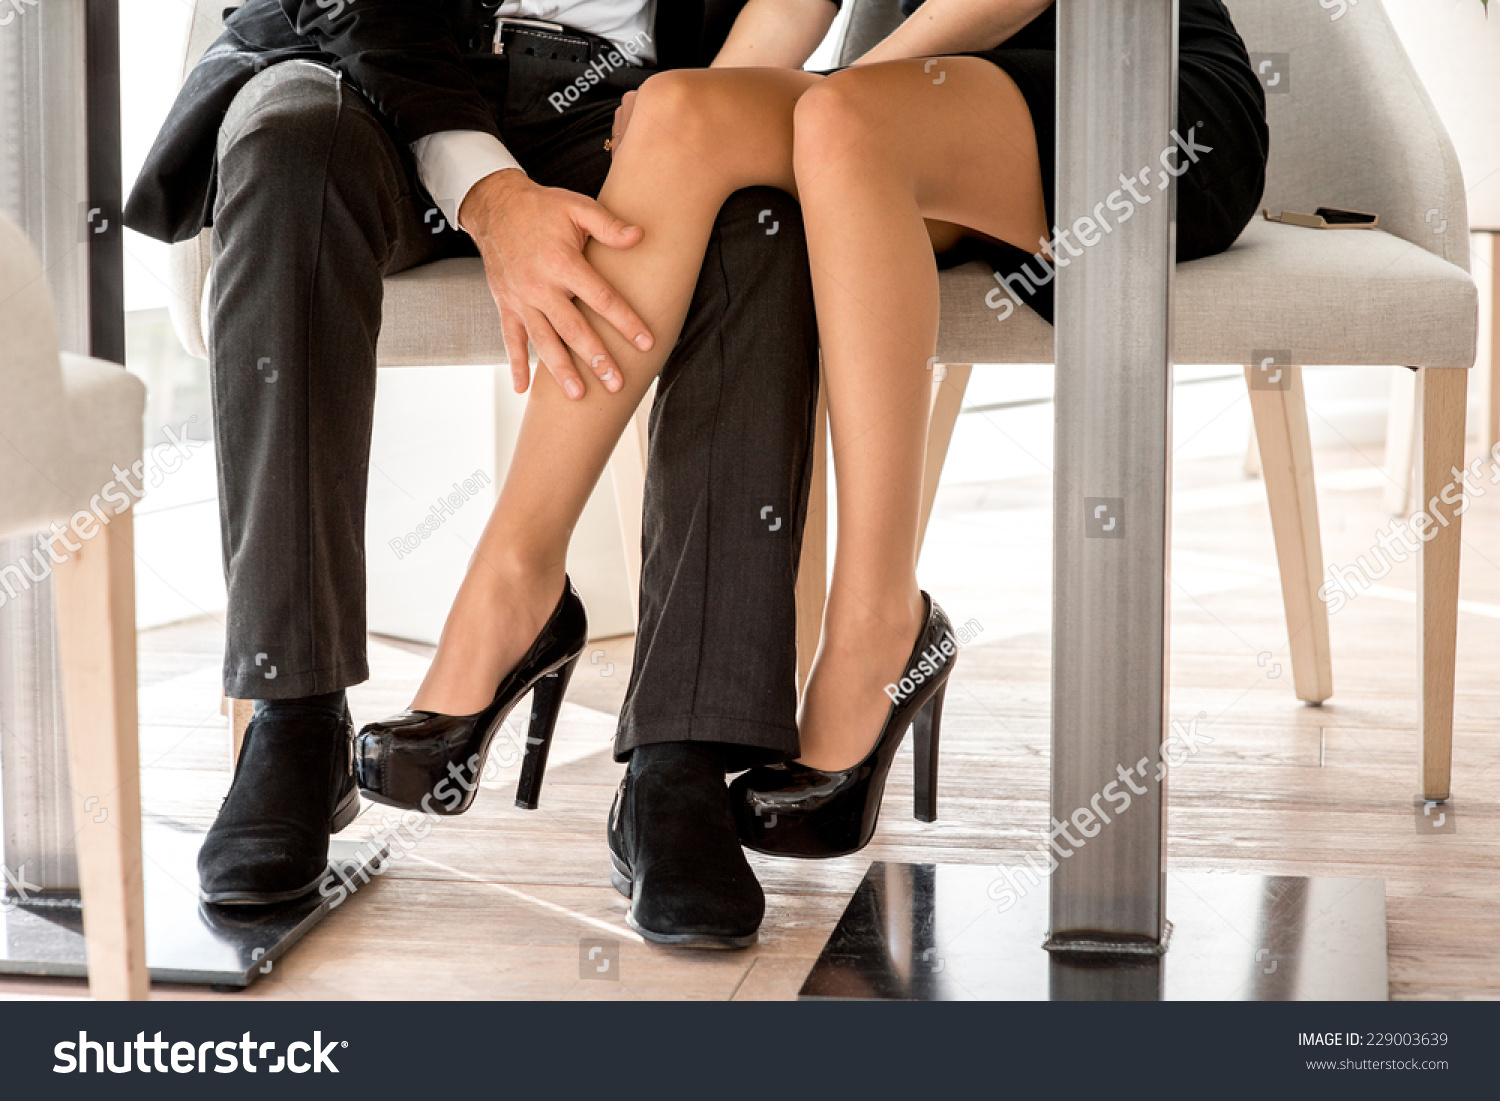 Young Couple Flirting Legs Restaurant Under Stock Photo Royalty